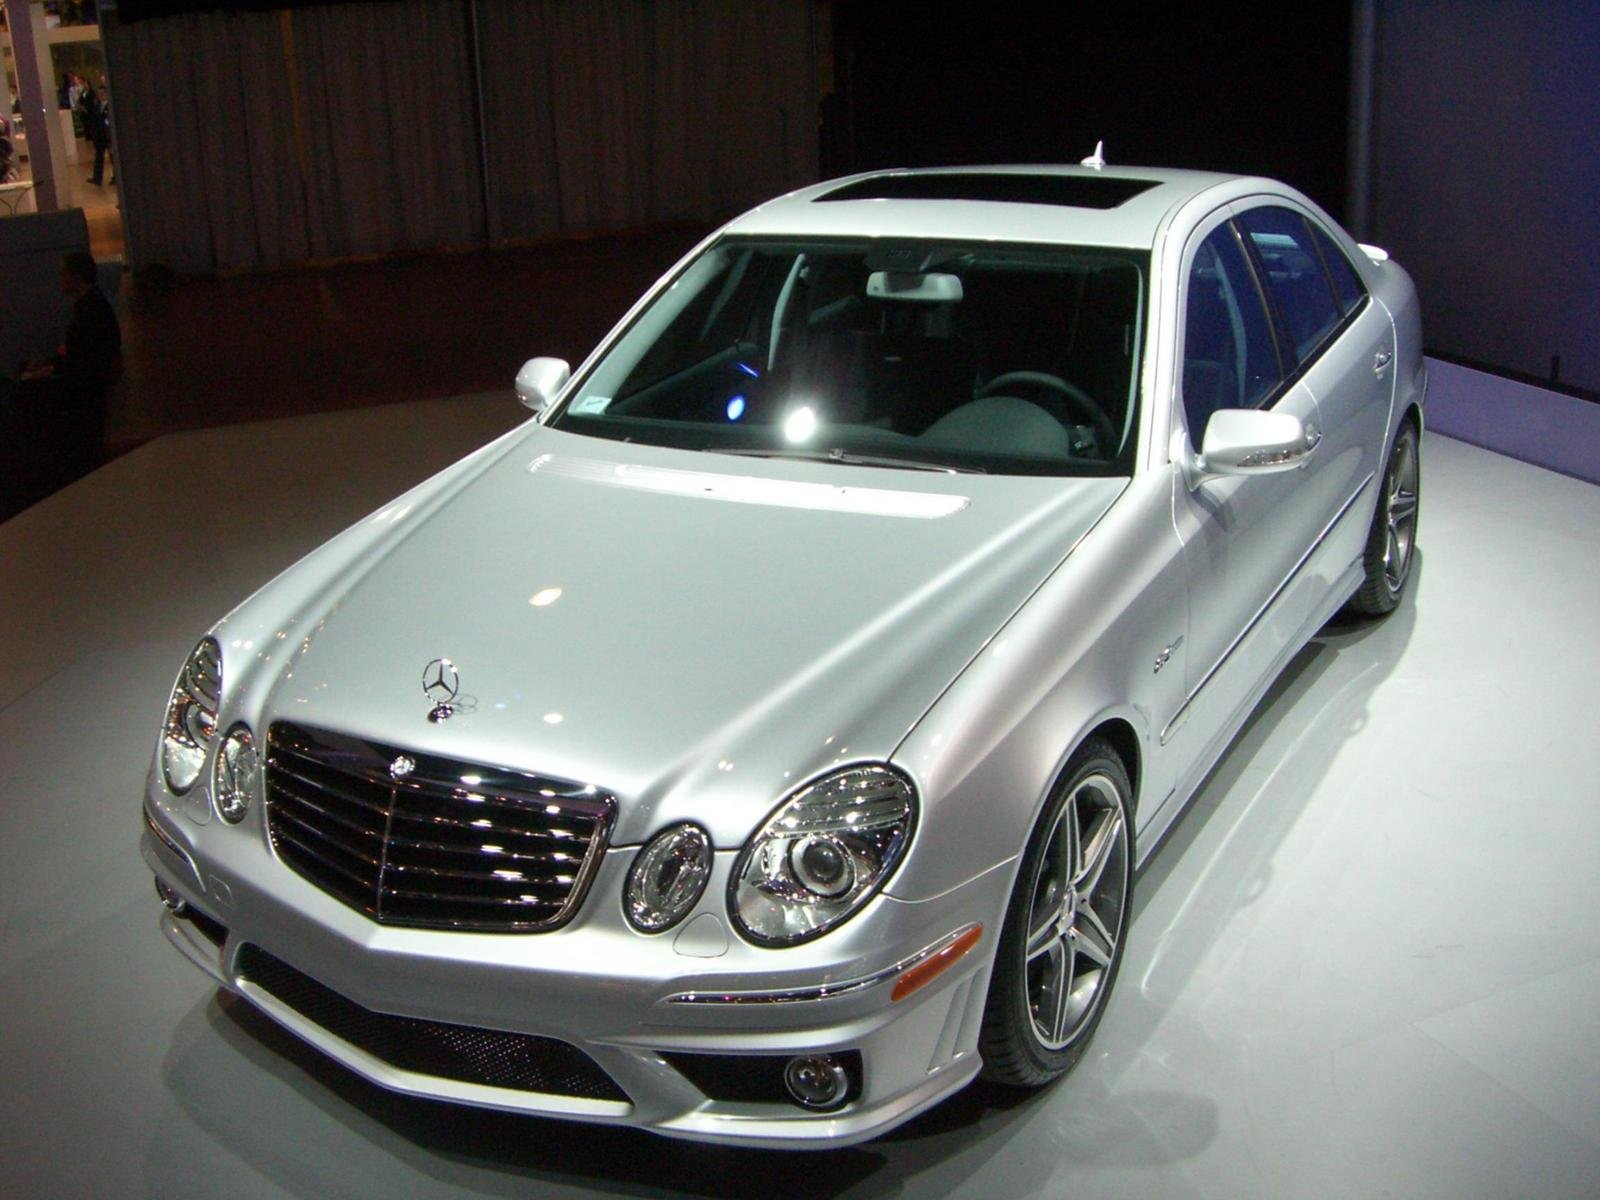 2007 mercedes benz e63 amg picture 53104 car review. Black Bedroom Furniture Sets. Home Design Ideas